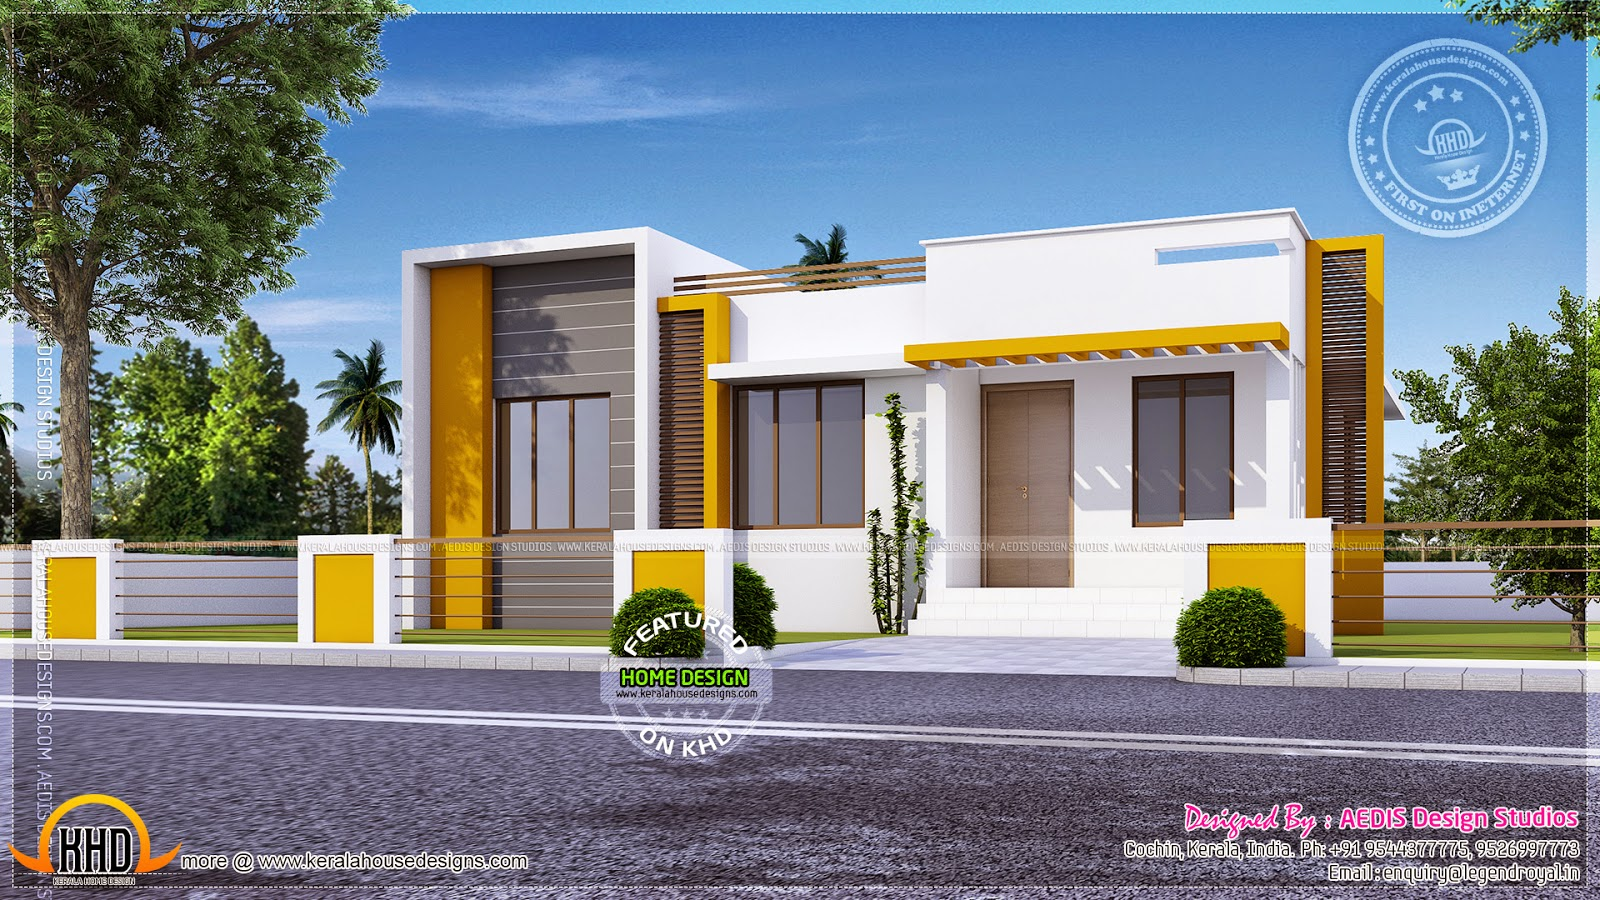 Design house contemporary single story house flat roof second sun co